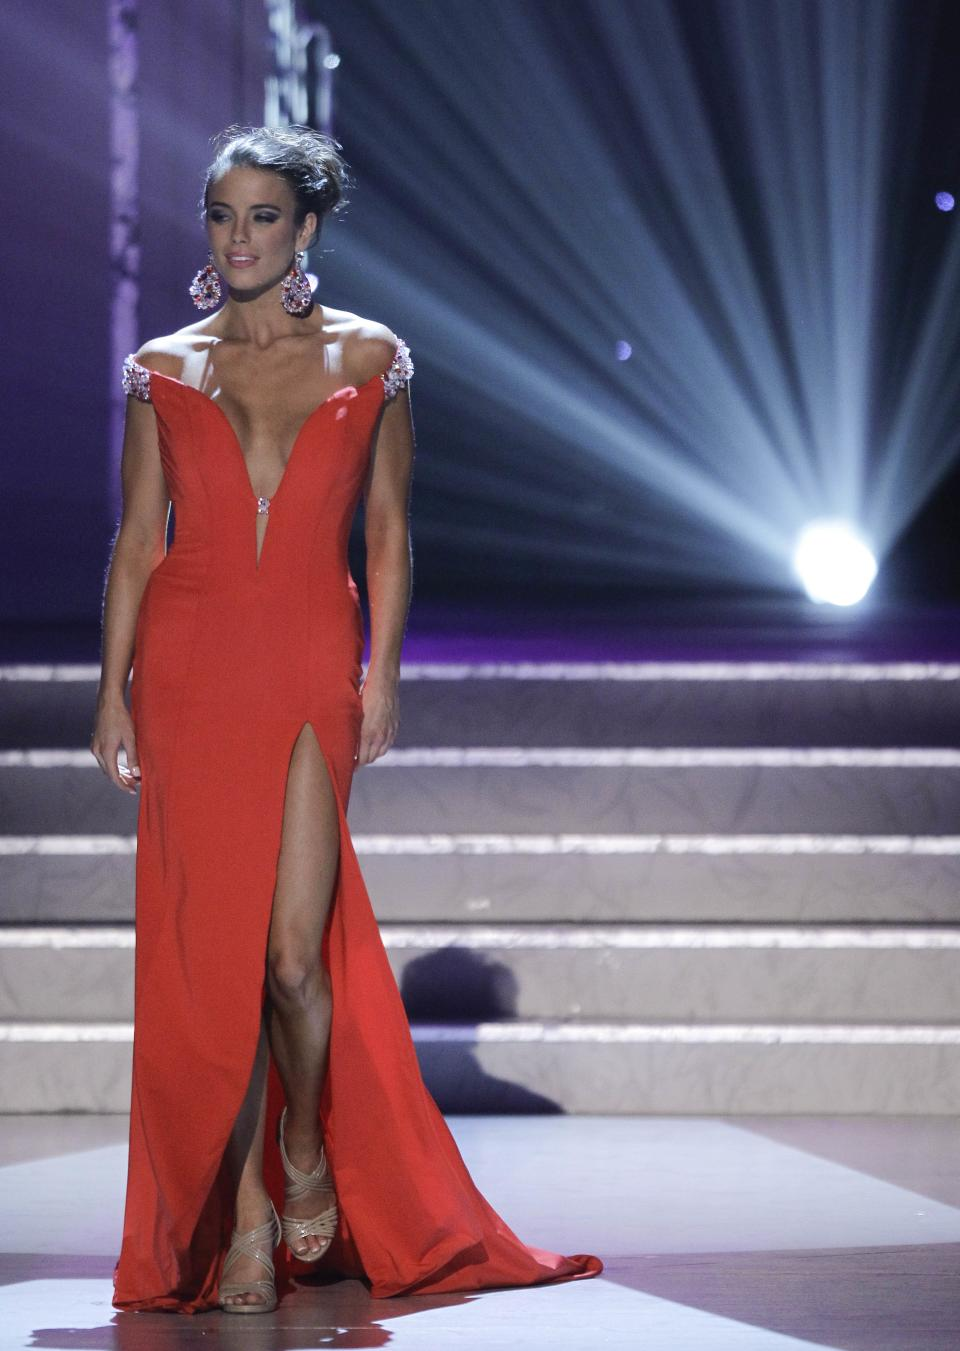 Madeline Mitchell, Miss Alabama, competes in the evening gown competition during the 2011 Miss USA pageant, Sunday, June 19, 2011, in Las Vegas.  (AP Photo/Julie Jacobson)